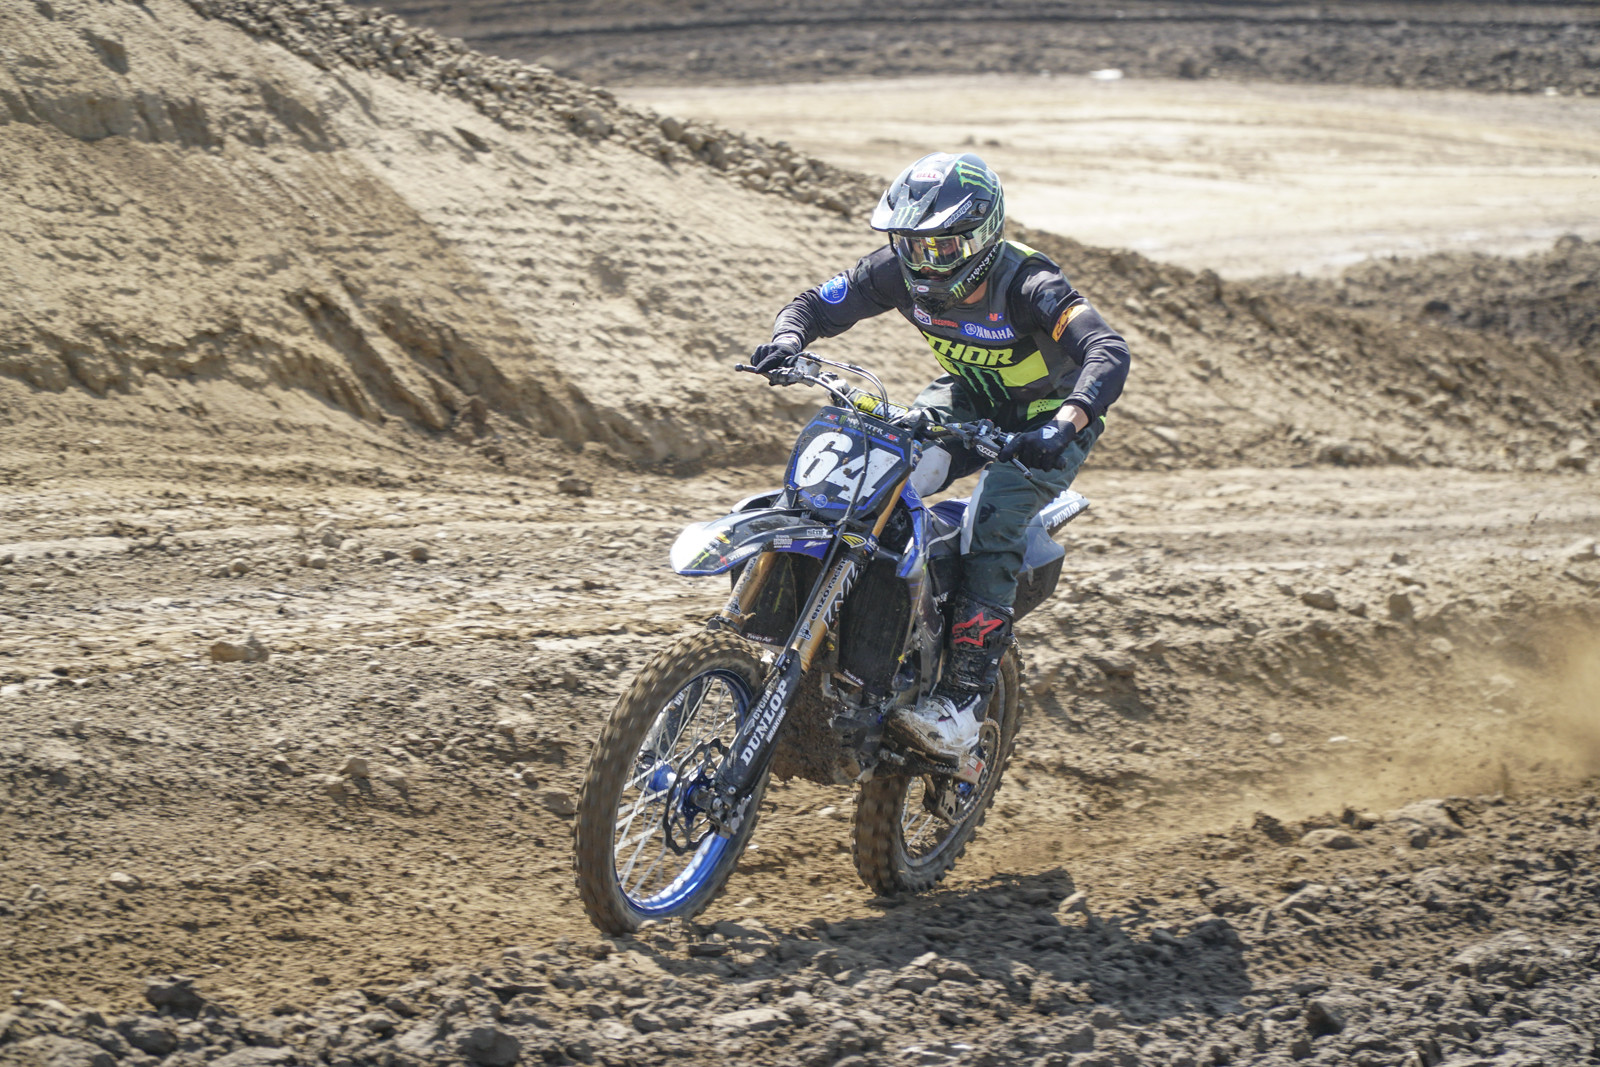 Colt Nichols is the 2021 250 SX East Champion. He's got to be feeling good heading into Fox Raceway.